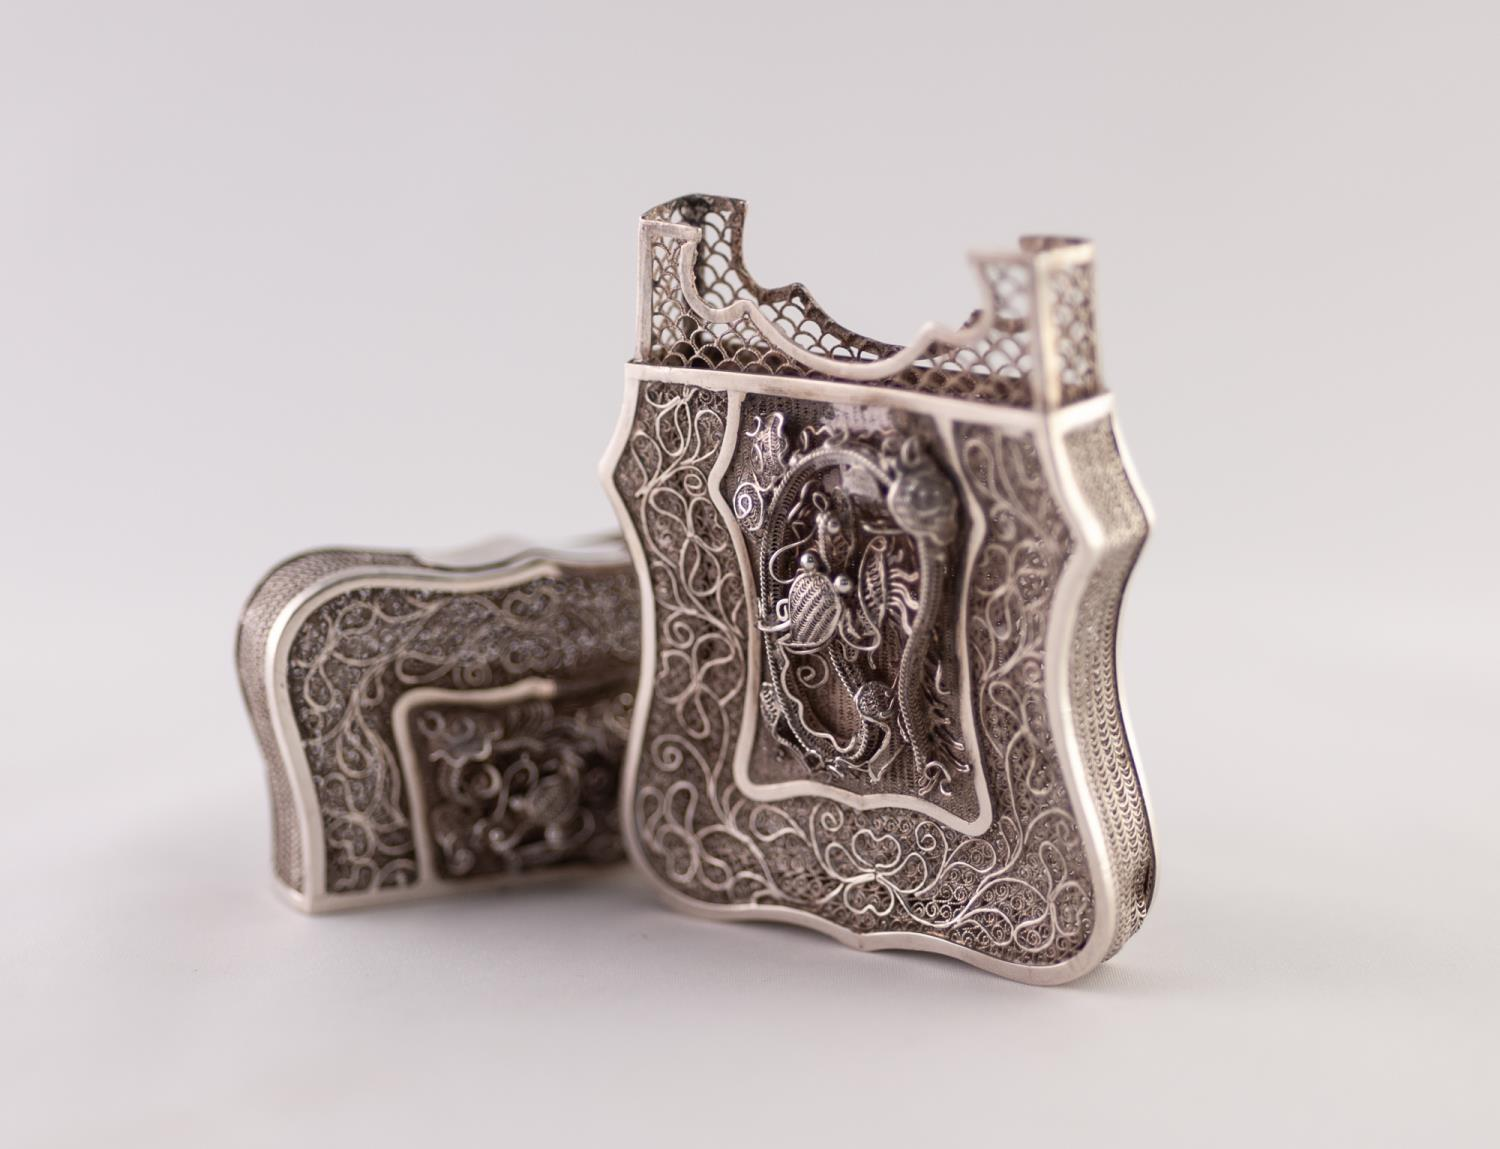 Lot 38 - A CHINESE LATE QING DYNASTY SILVER FILAGREE-WORK CARTOUCHE SHAPED VISITING CARD CASE, unmarked, 3